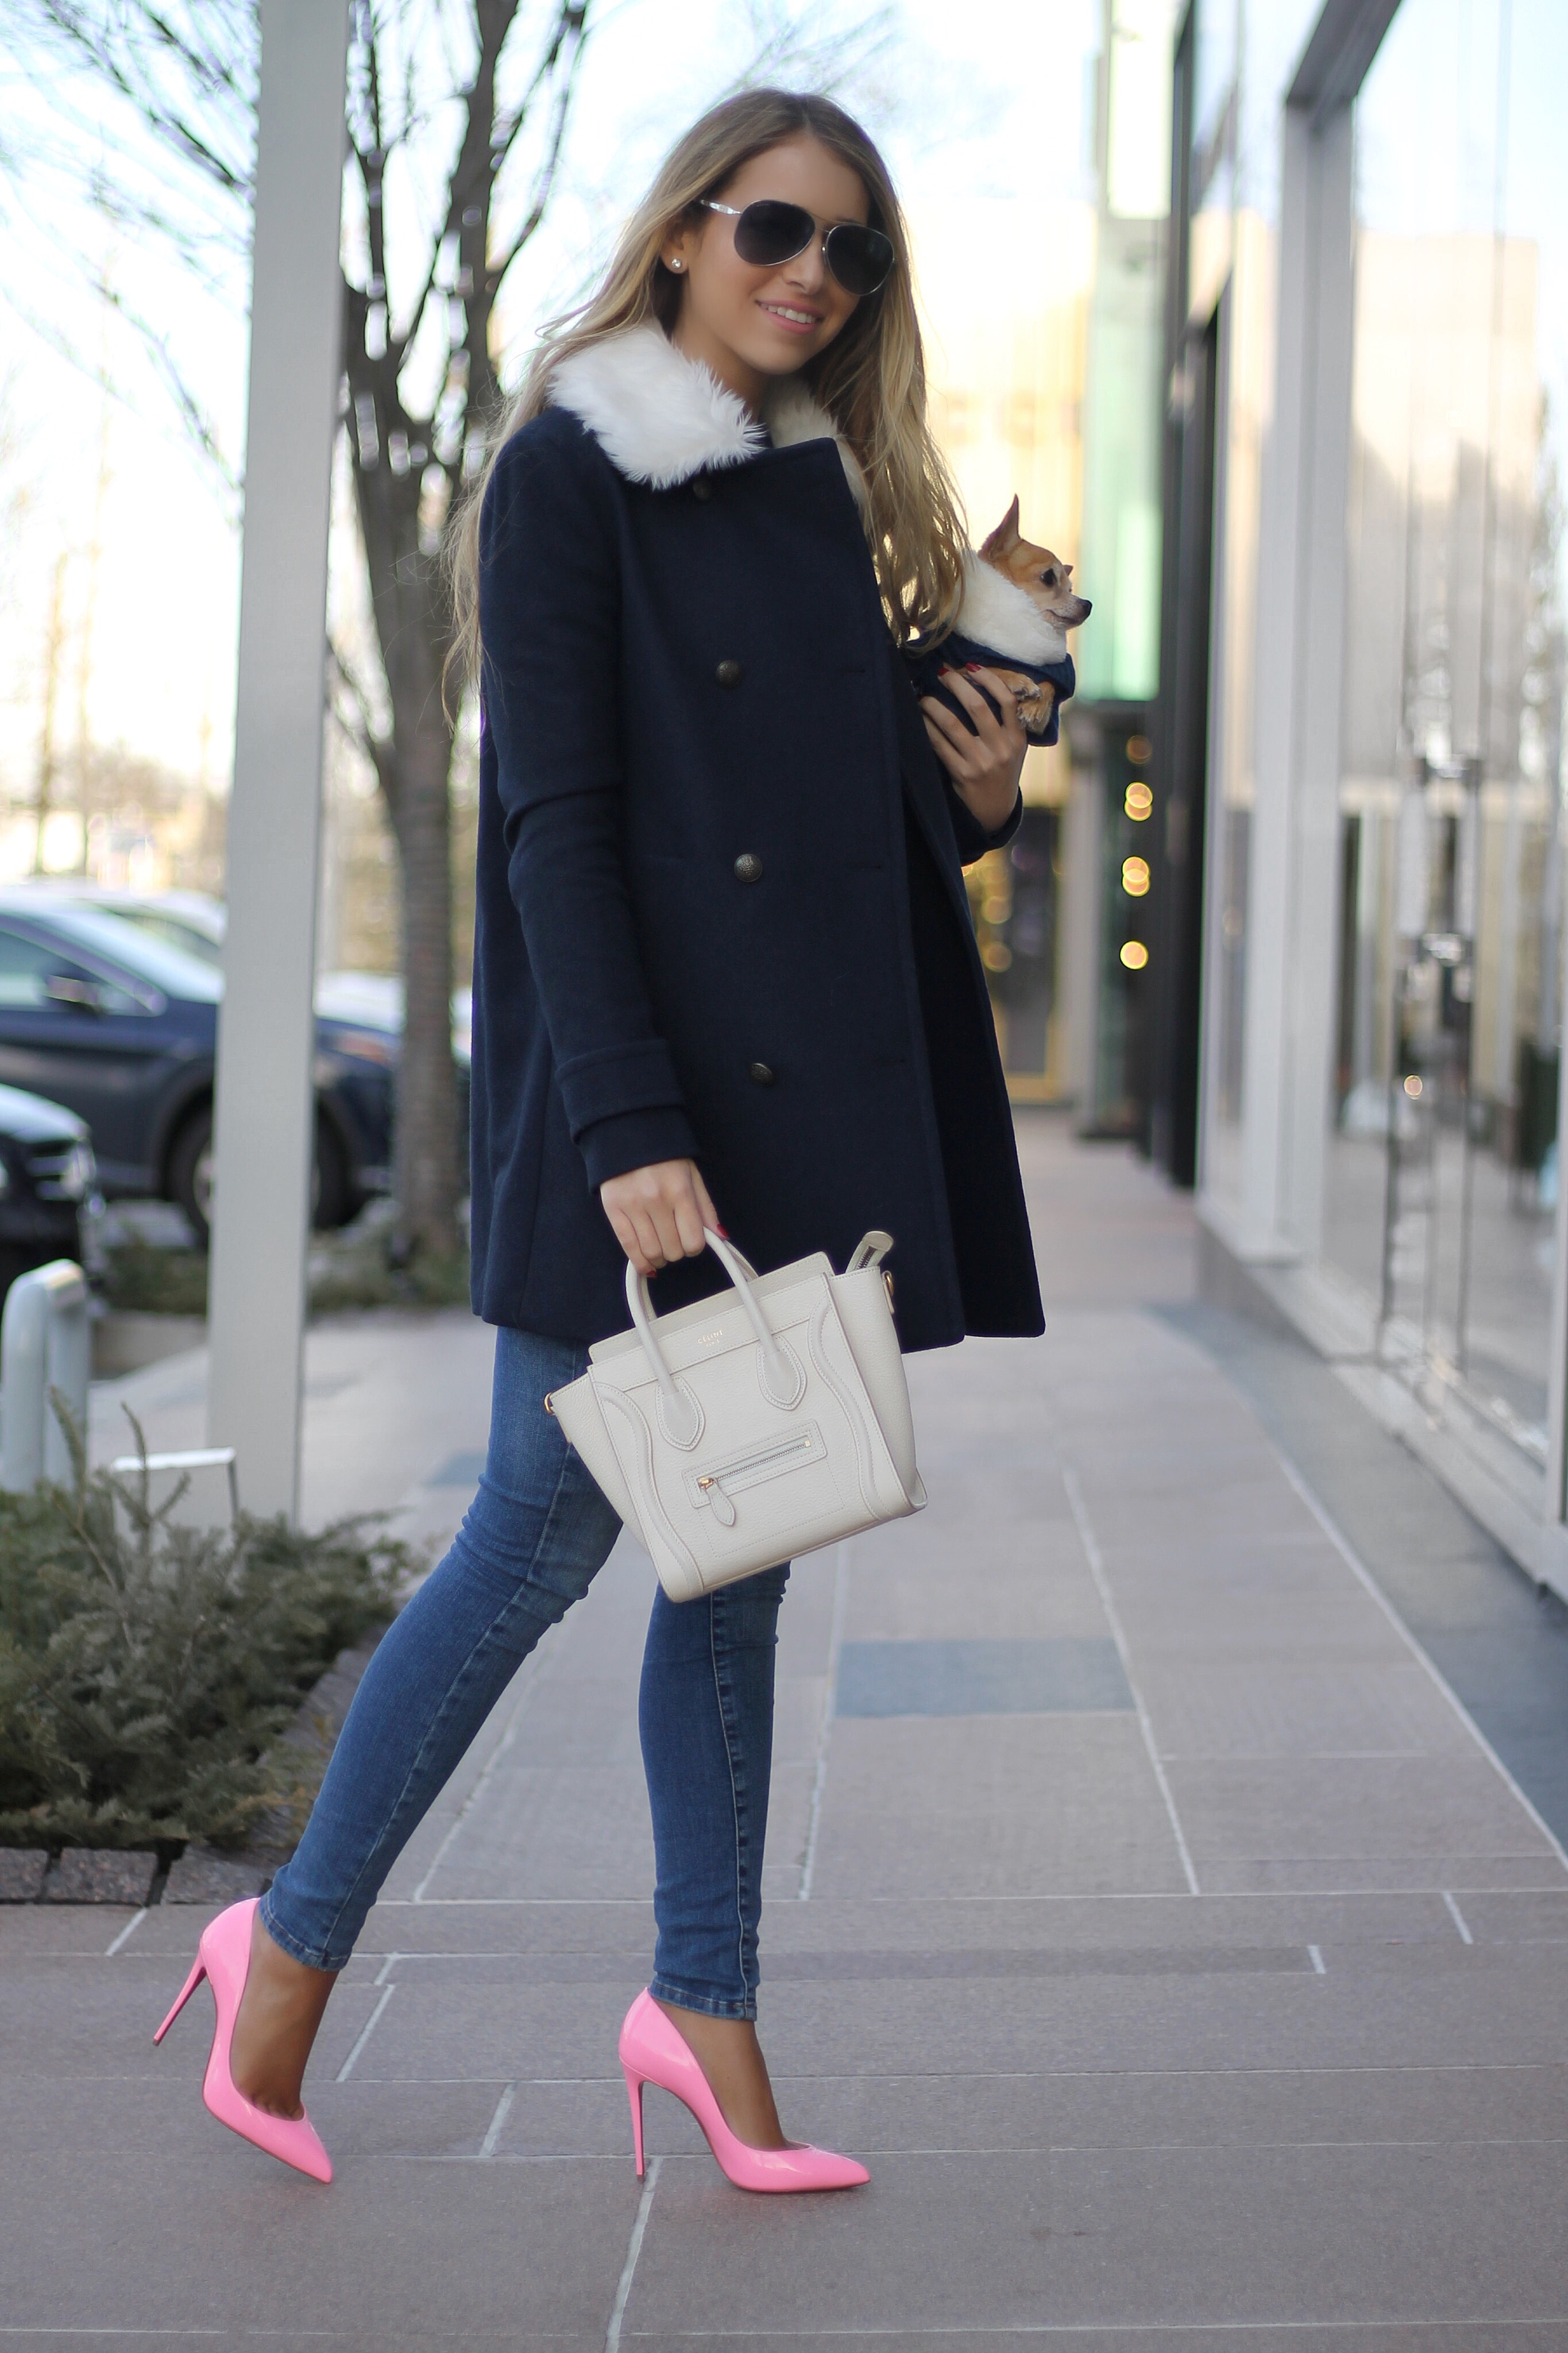 Winter Fashion: Must Have Outerwear